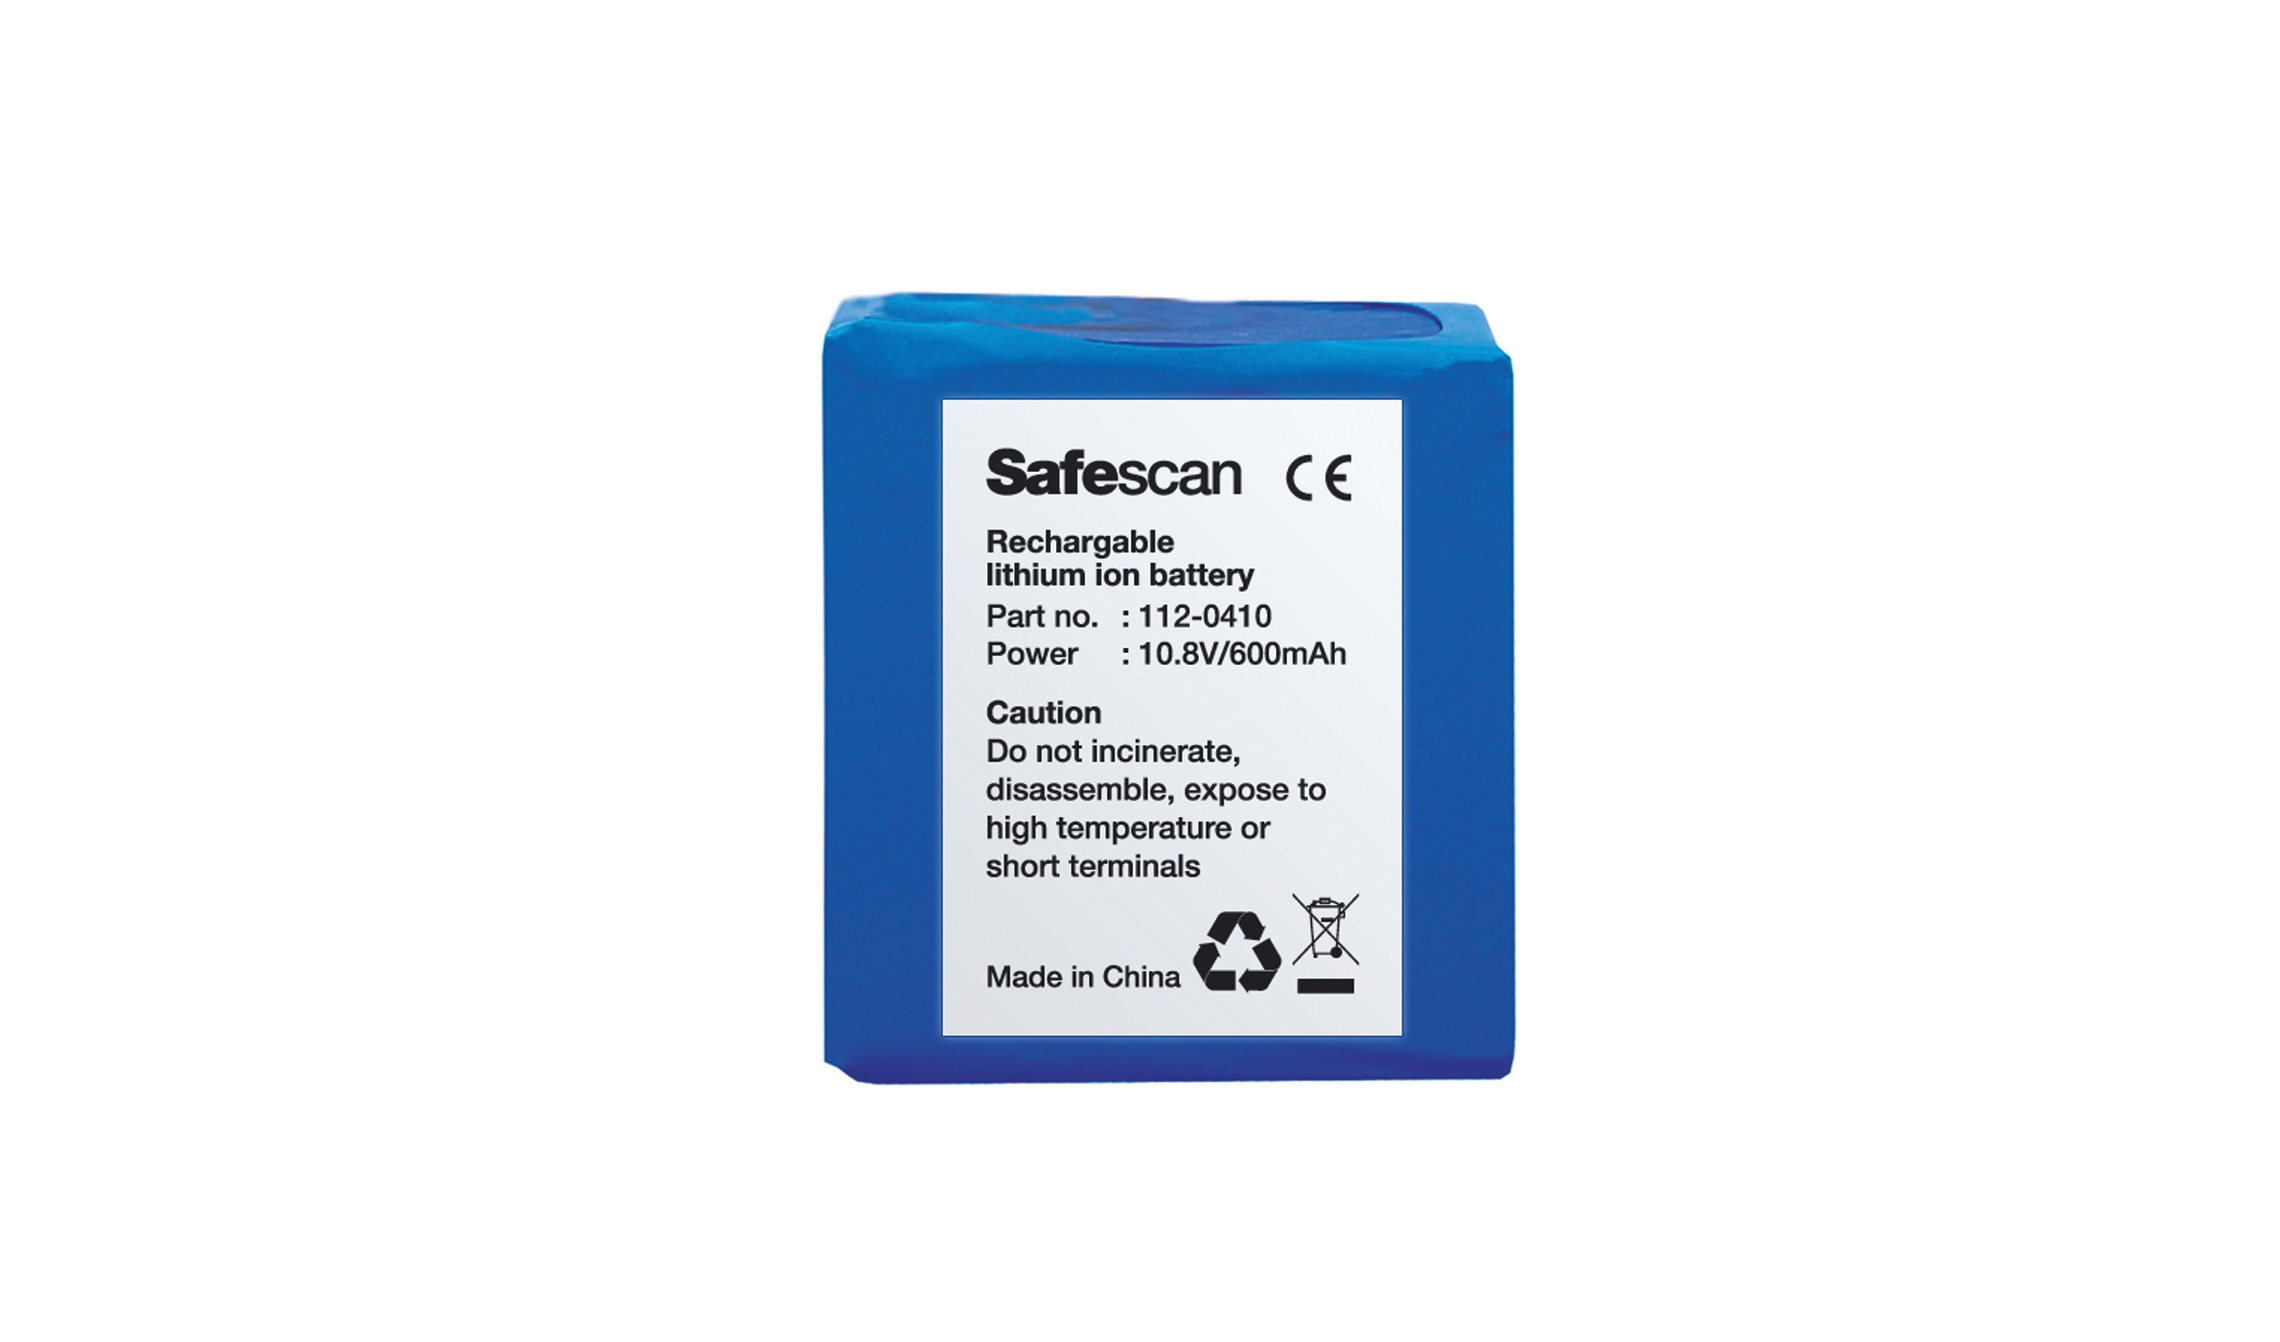 safescan-lb-105-bateria-recargable